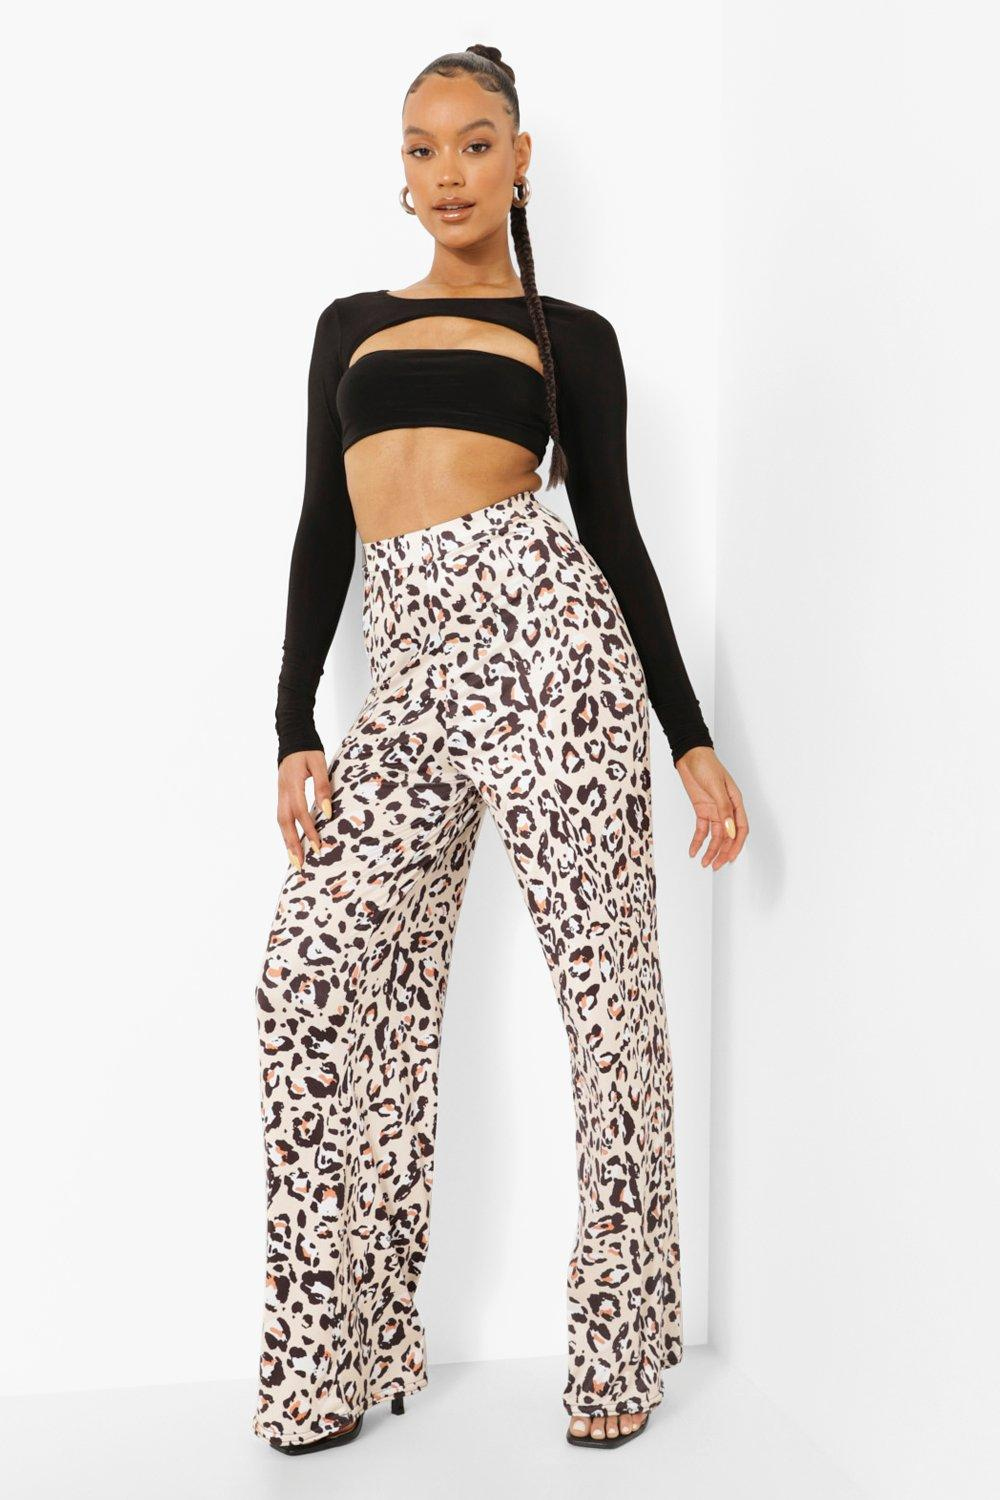 edf51ffdc70d Womens Chocolate Leopard Print Slinky Wide Leg Pants. Hover to zoom